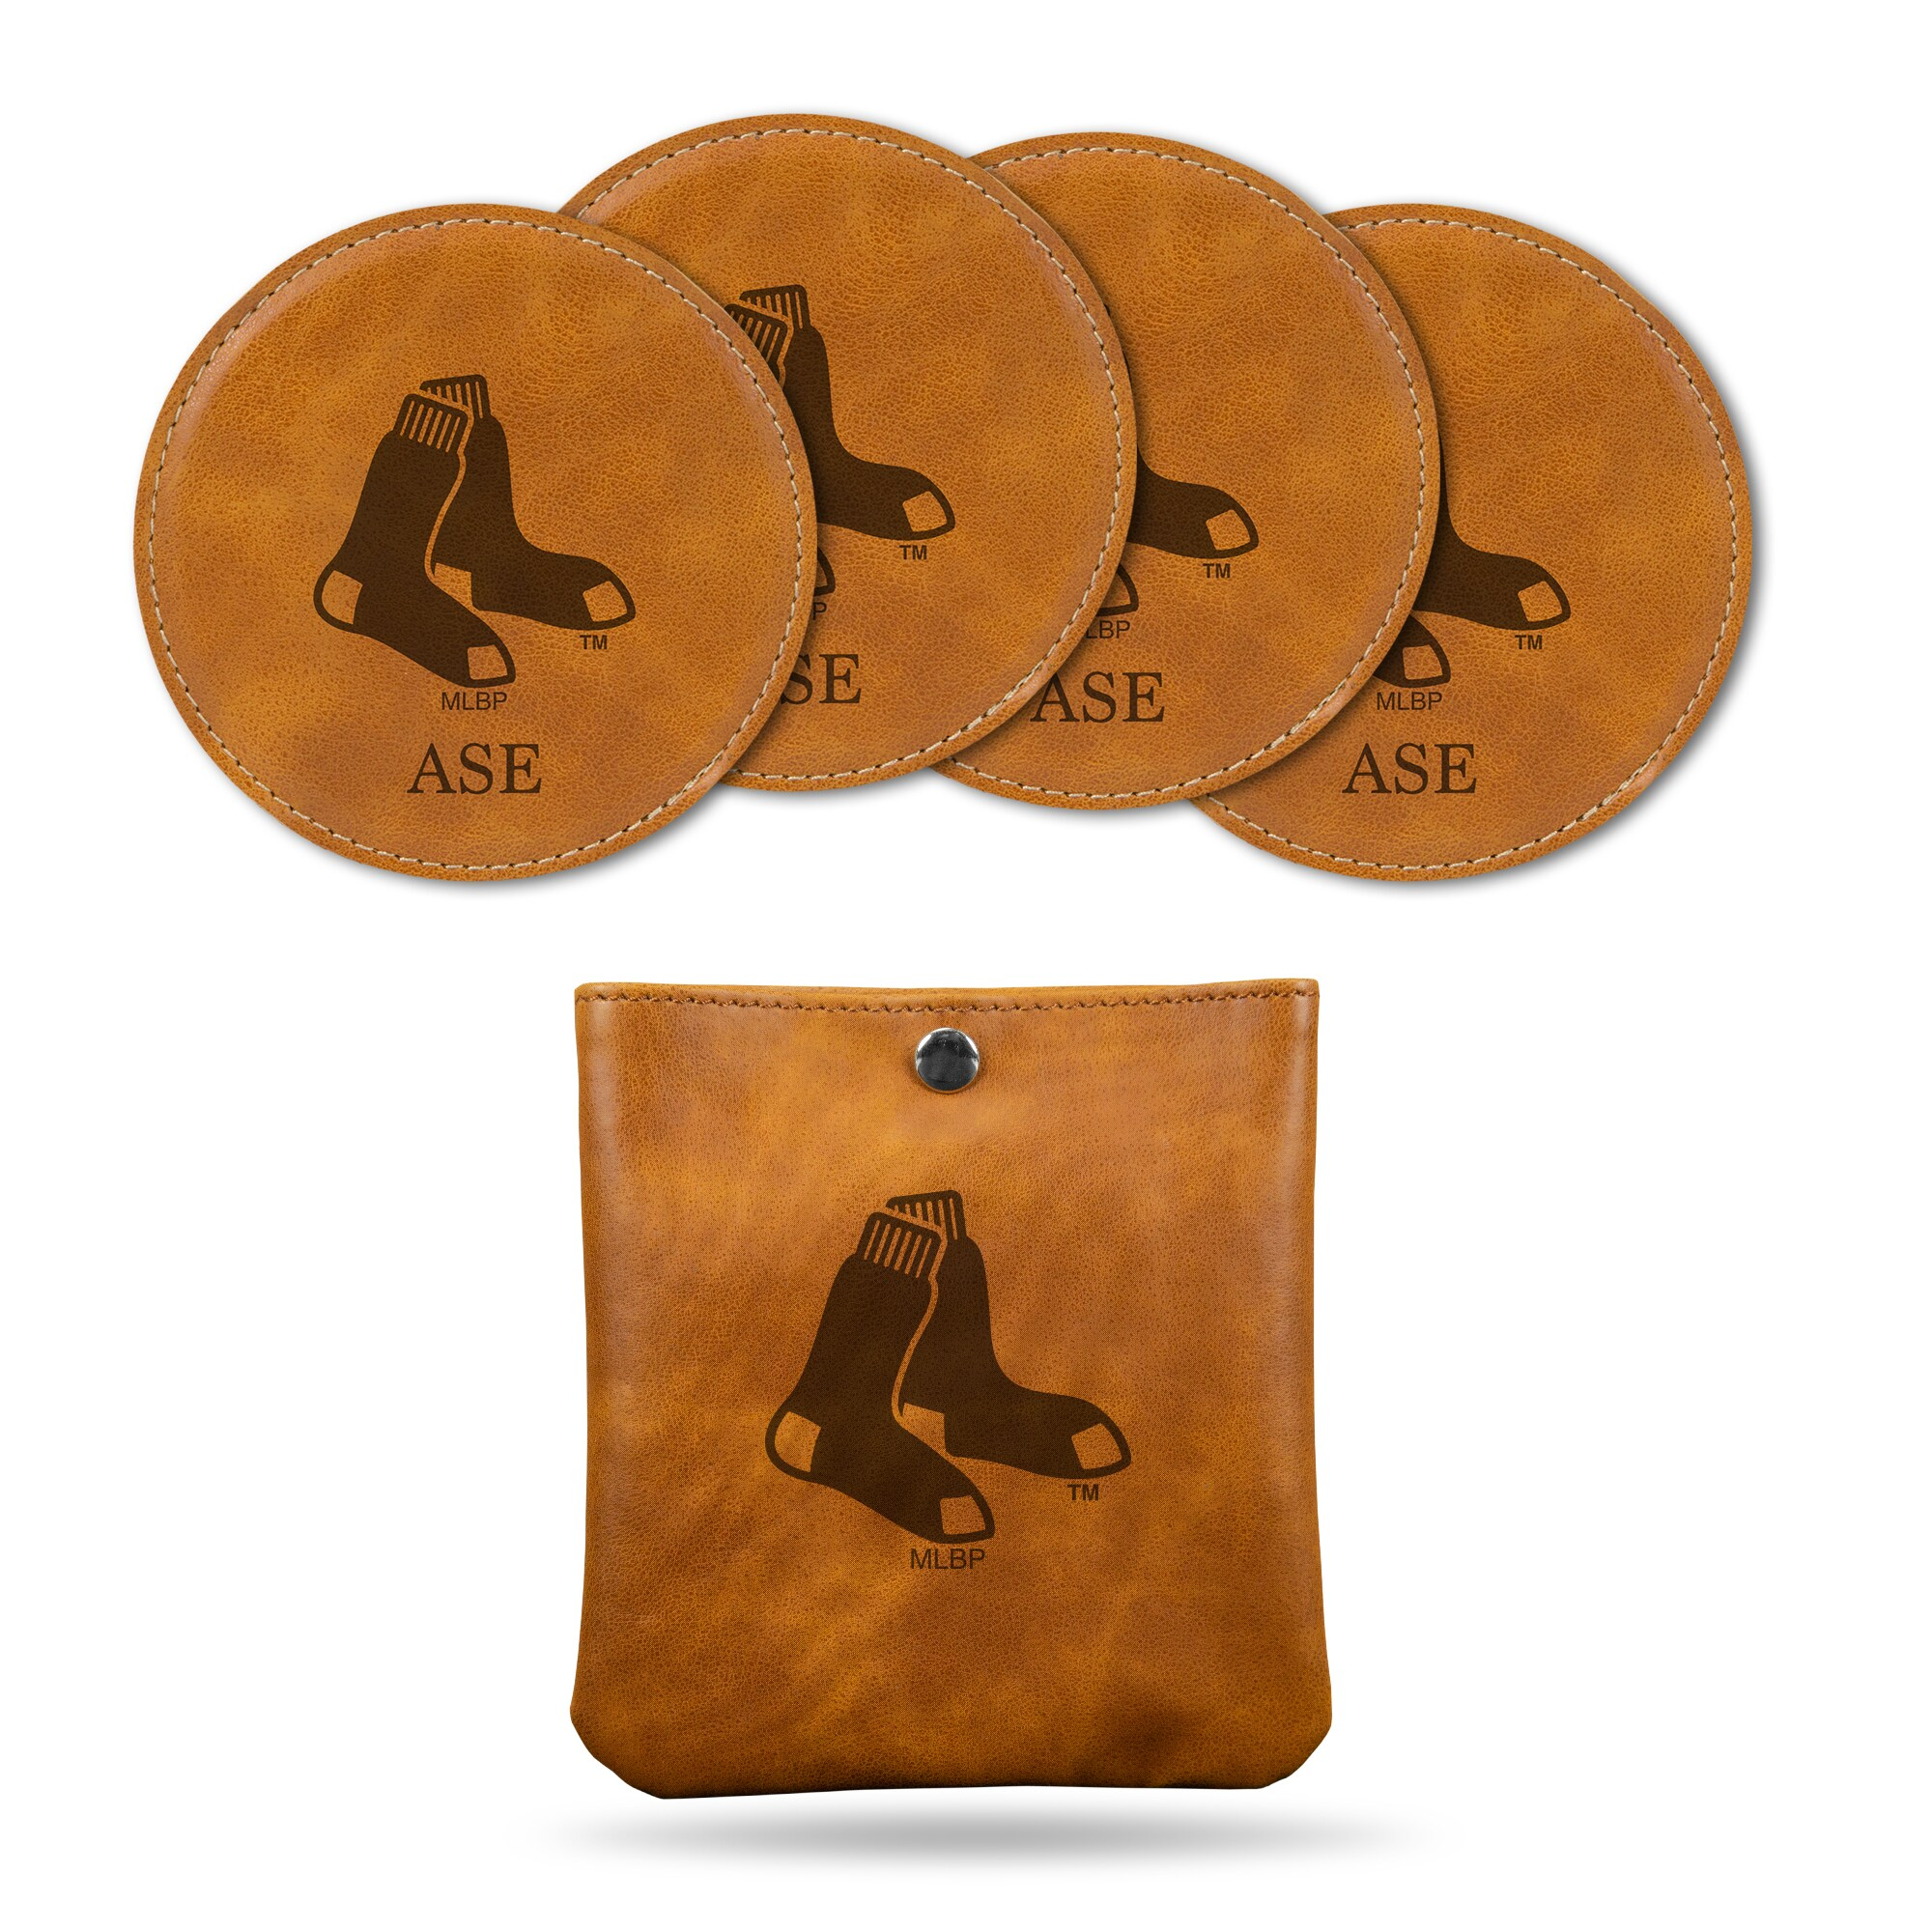 Boston Red Sox Sparo 4-Pack Personalized Coaster Set - Brown